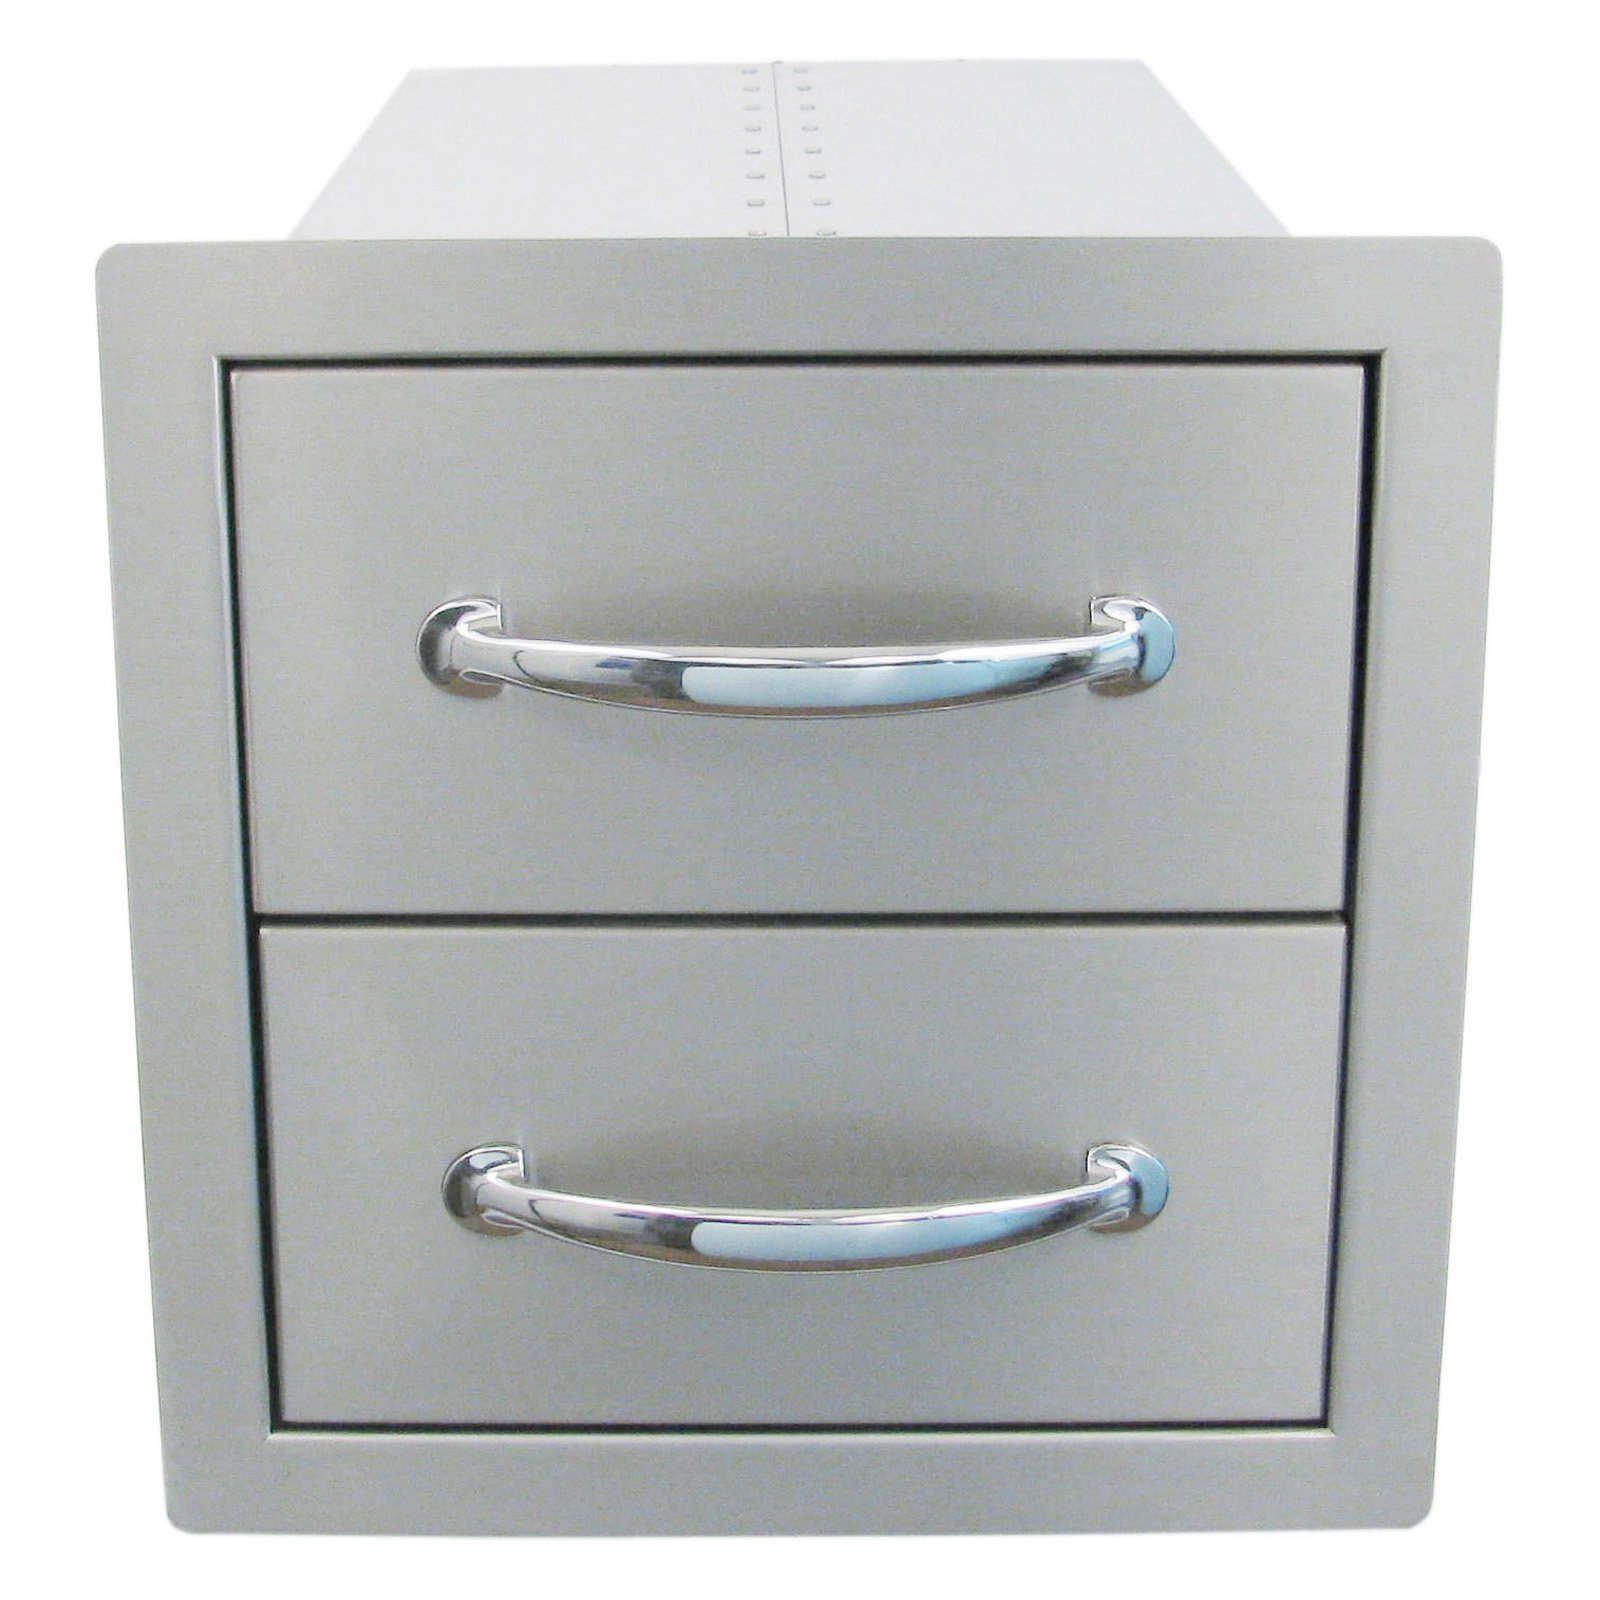 Sunstone Grills Classic Series 14 In. Flush Double Access Drawer